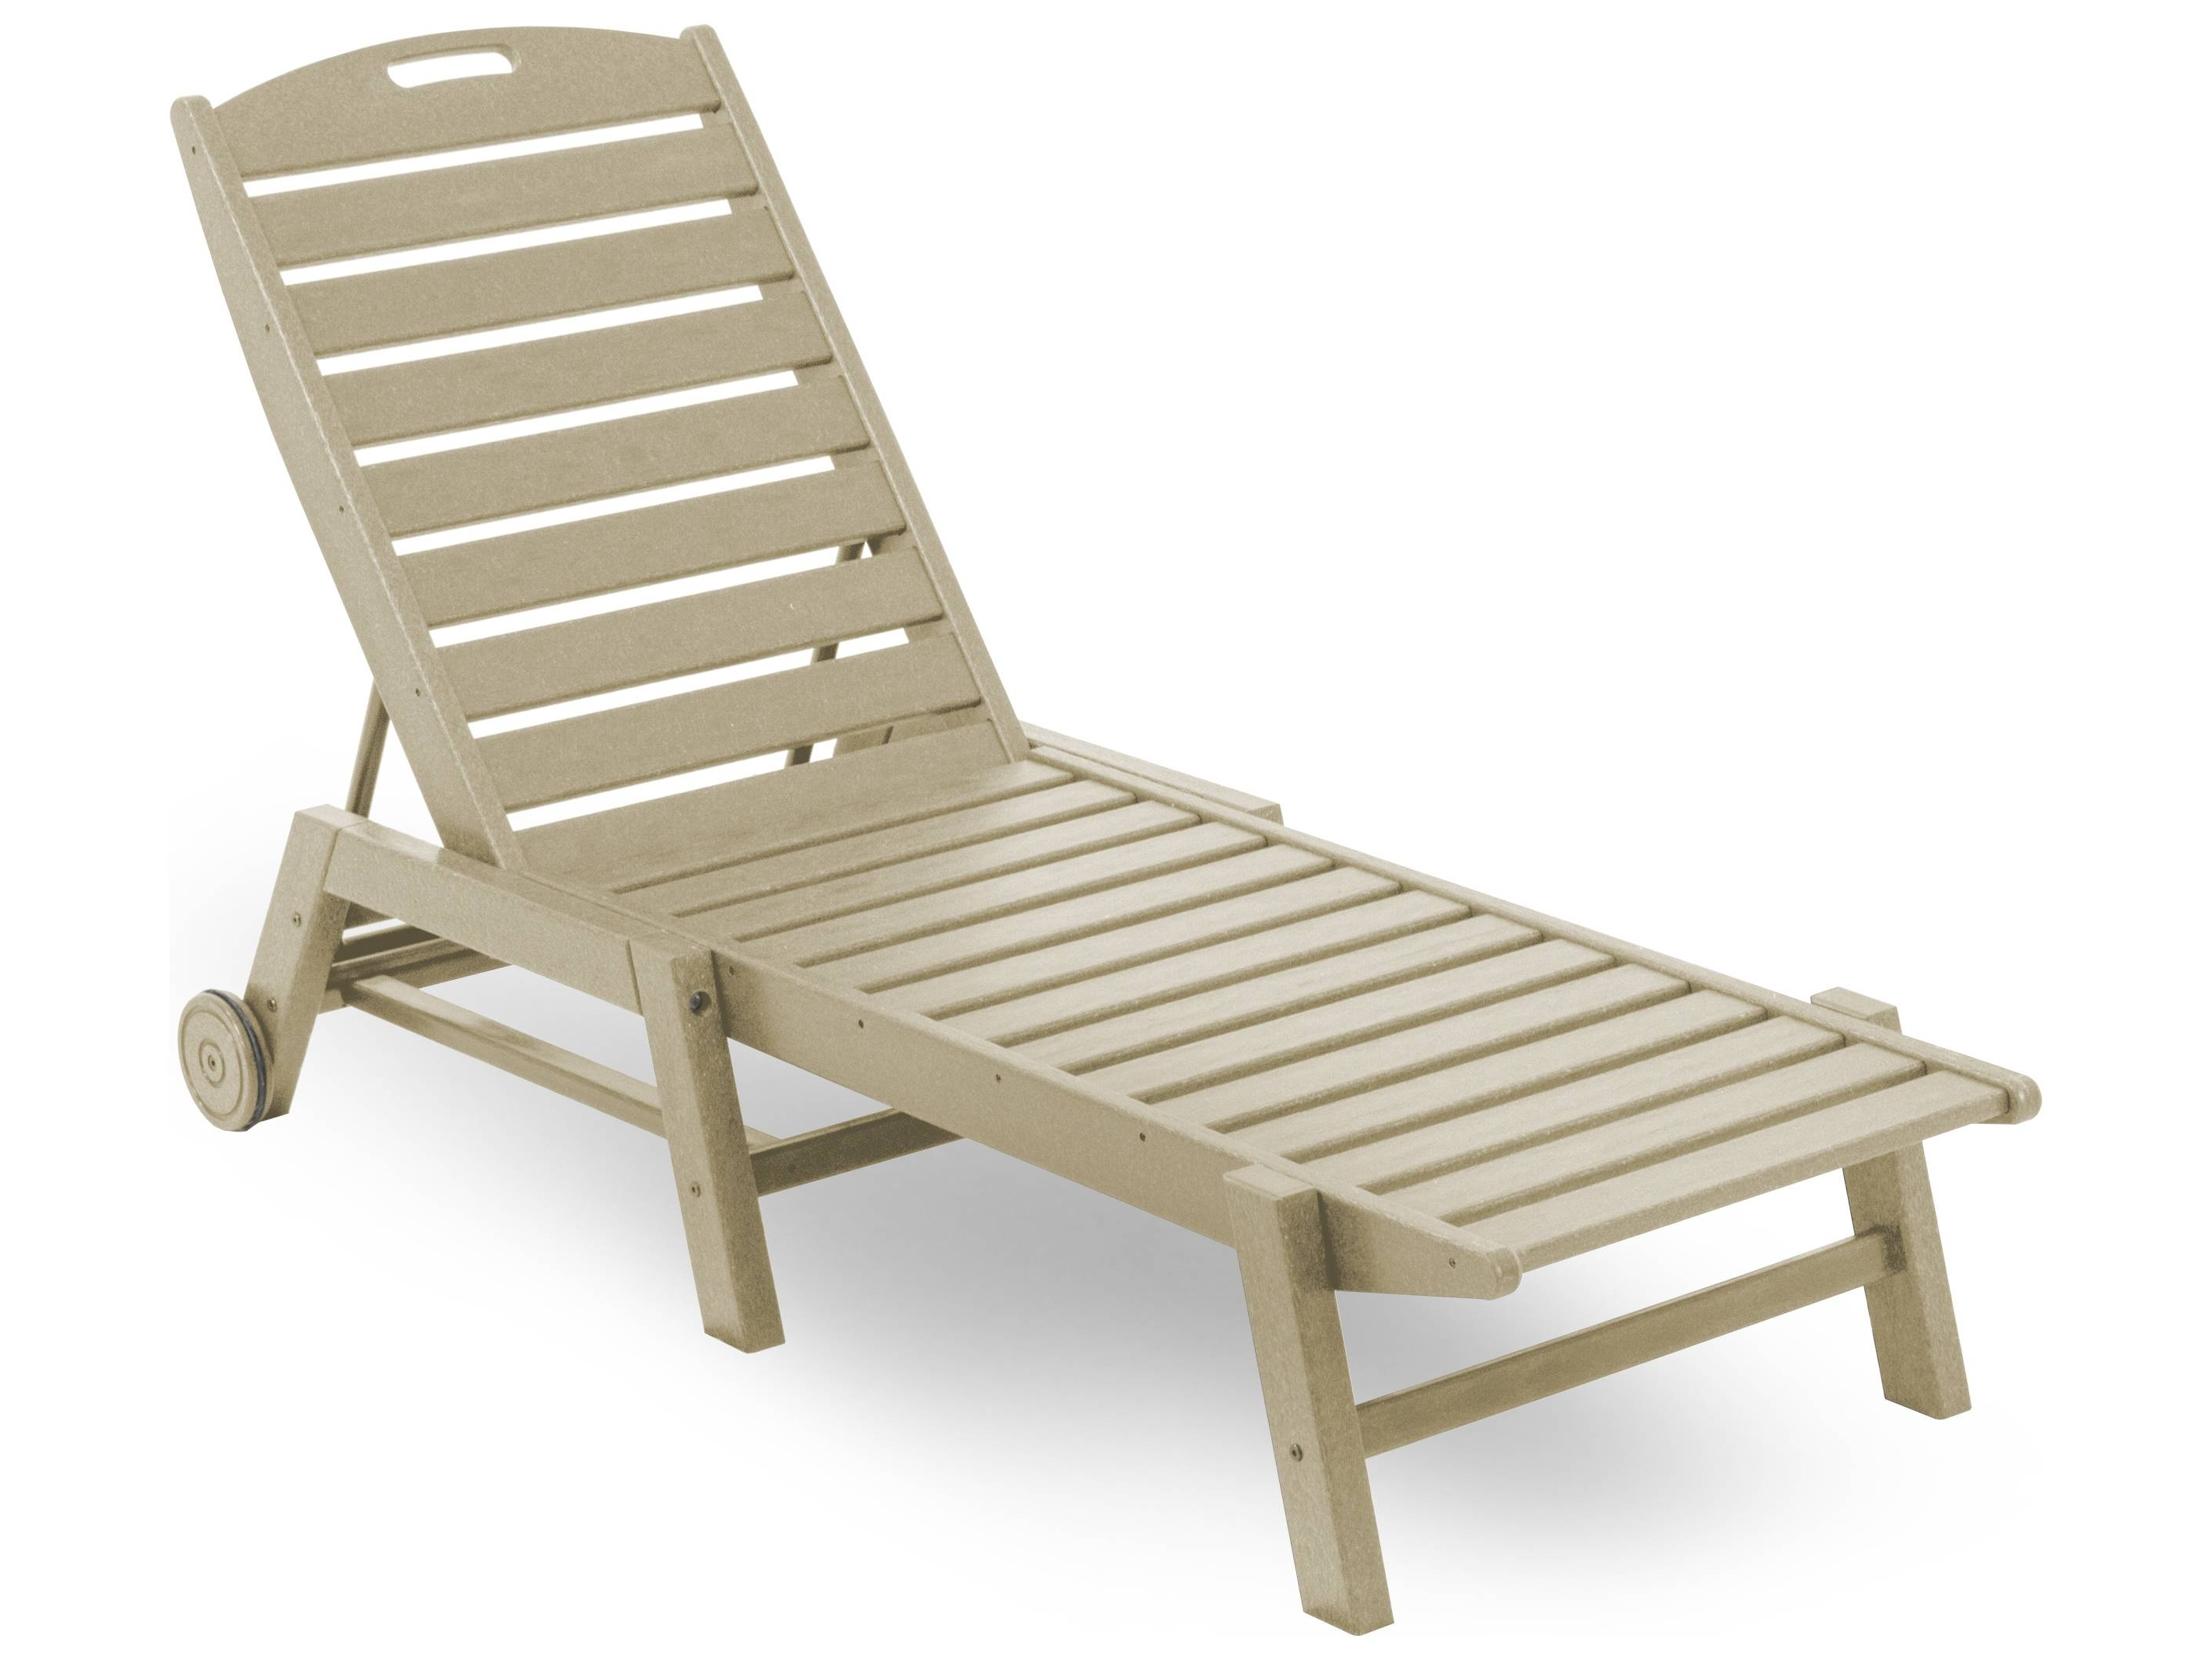 Plastic Chaise Lounge Chairs Intended For Preferred Convertible Chair : Furniture Outside Lounge Chairs Resin Outdoor (View 8 of 15)